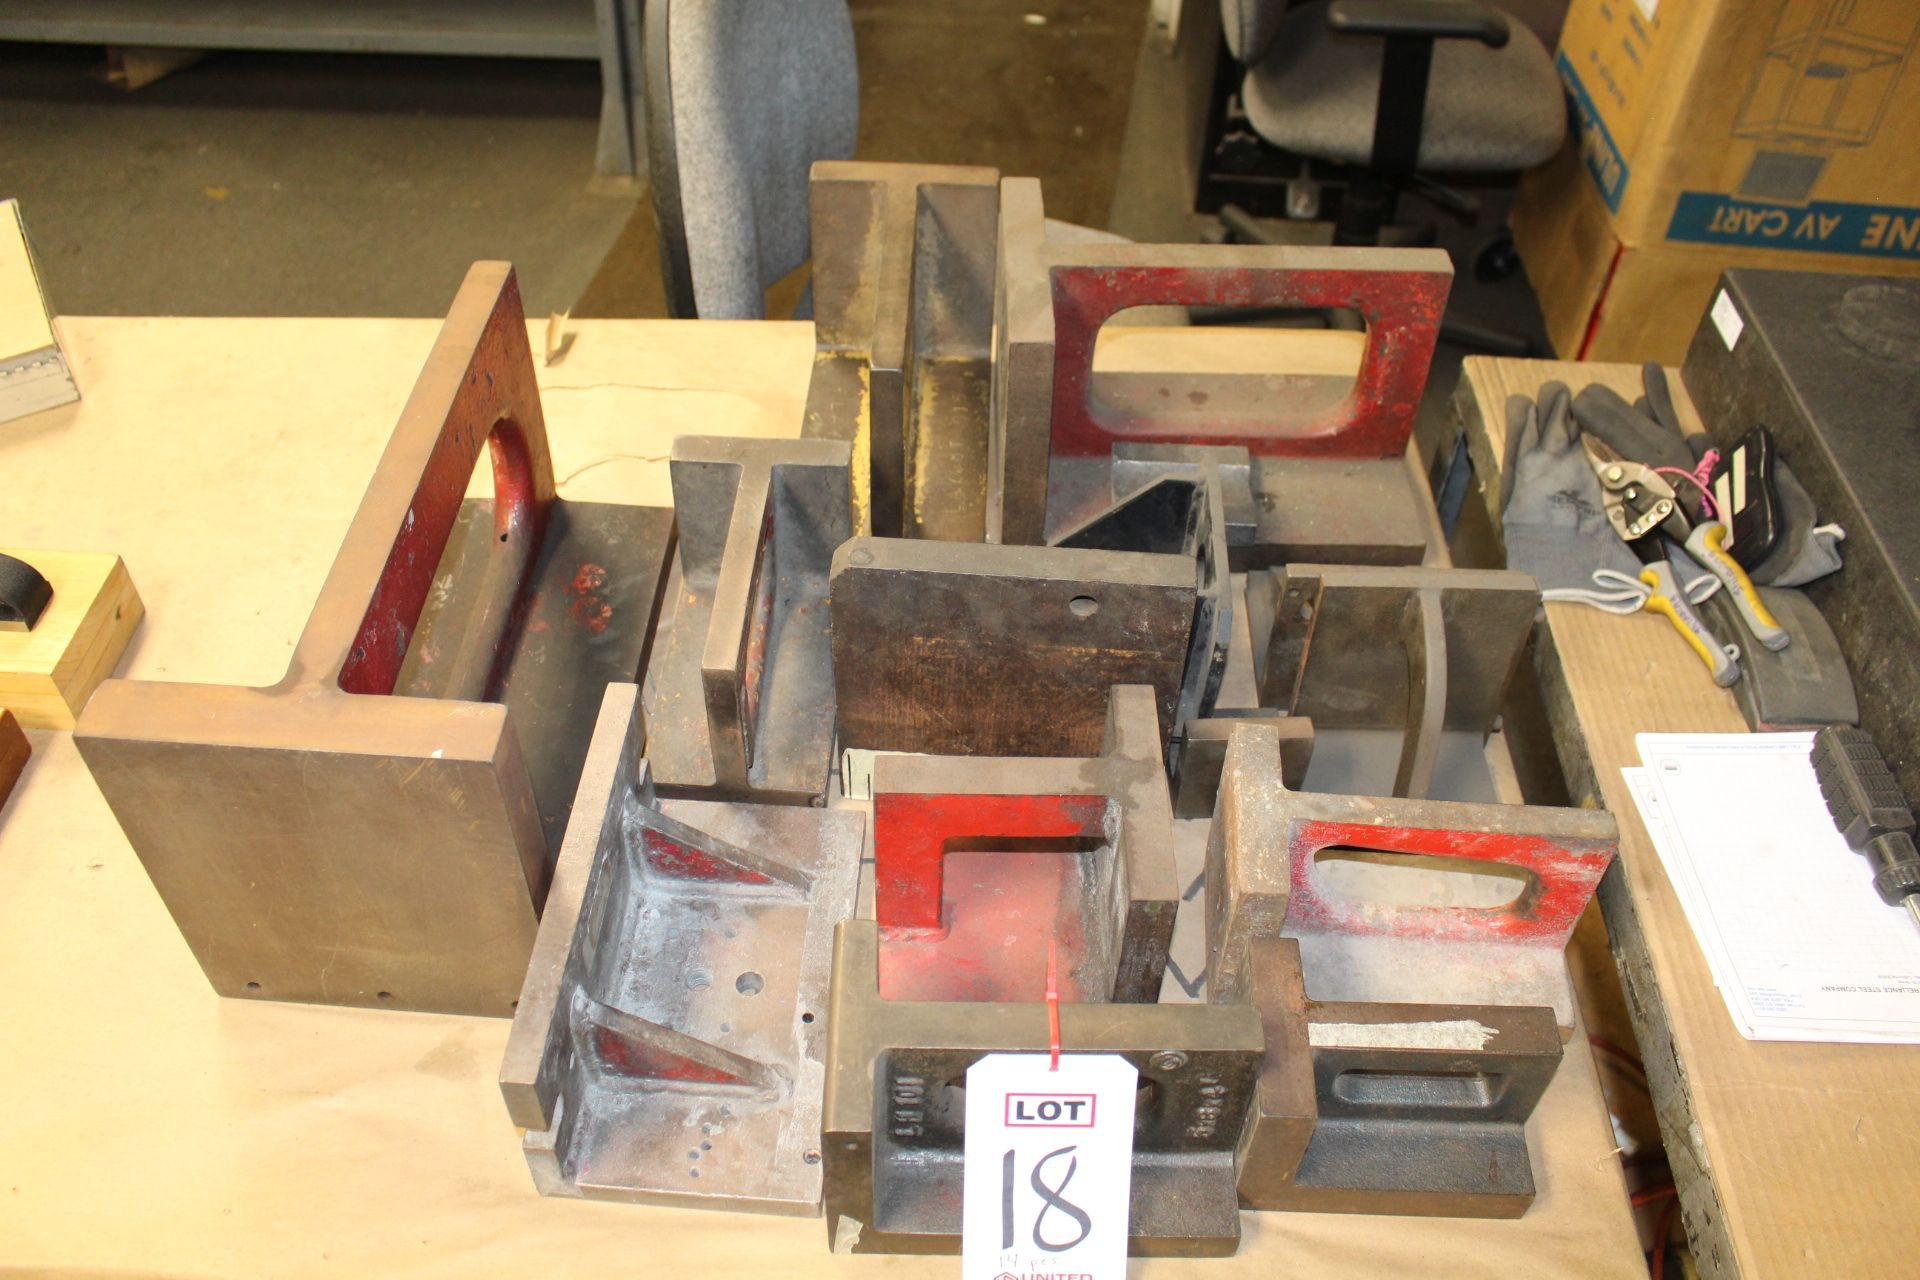 Lot 18 - LOT - (14) MISC INSPECTION ANGLE PLATES